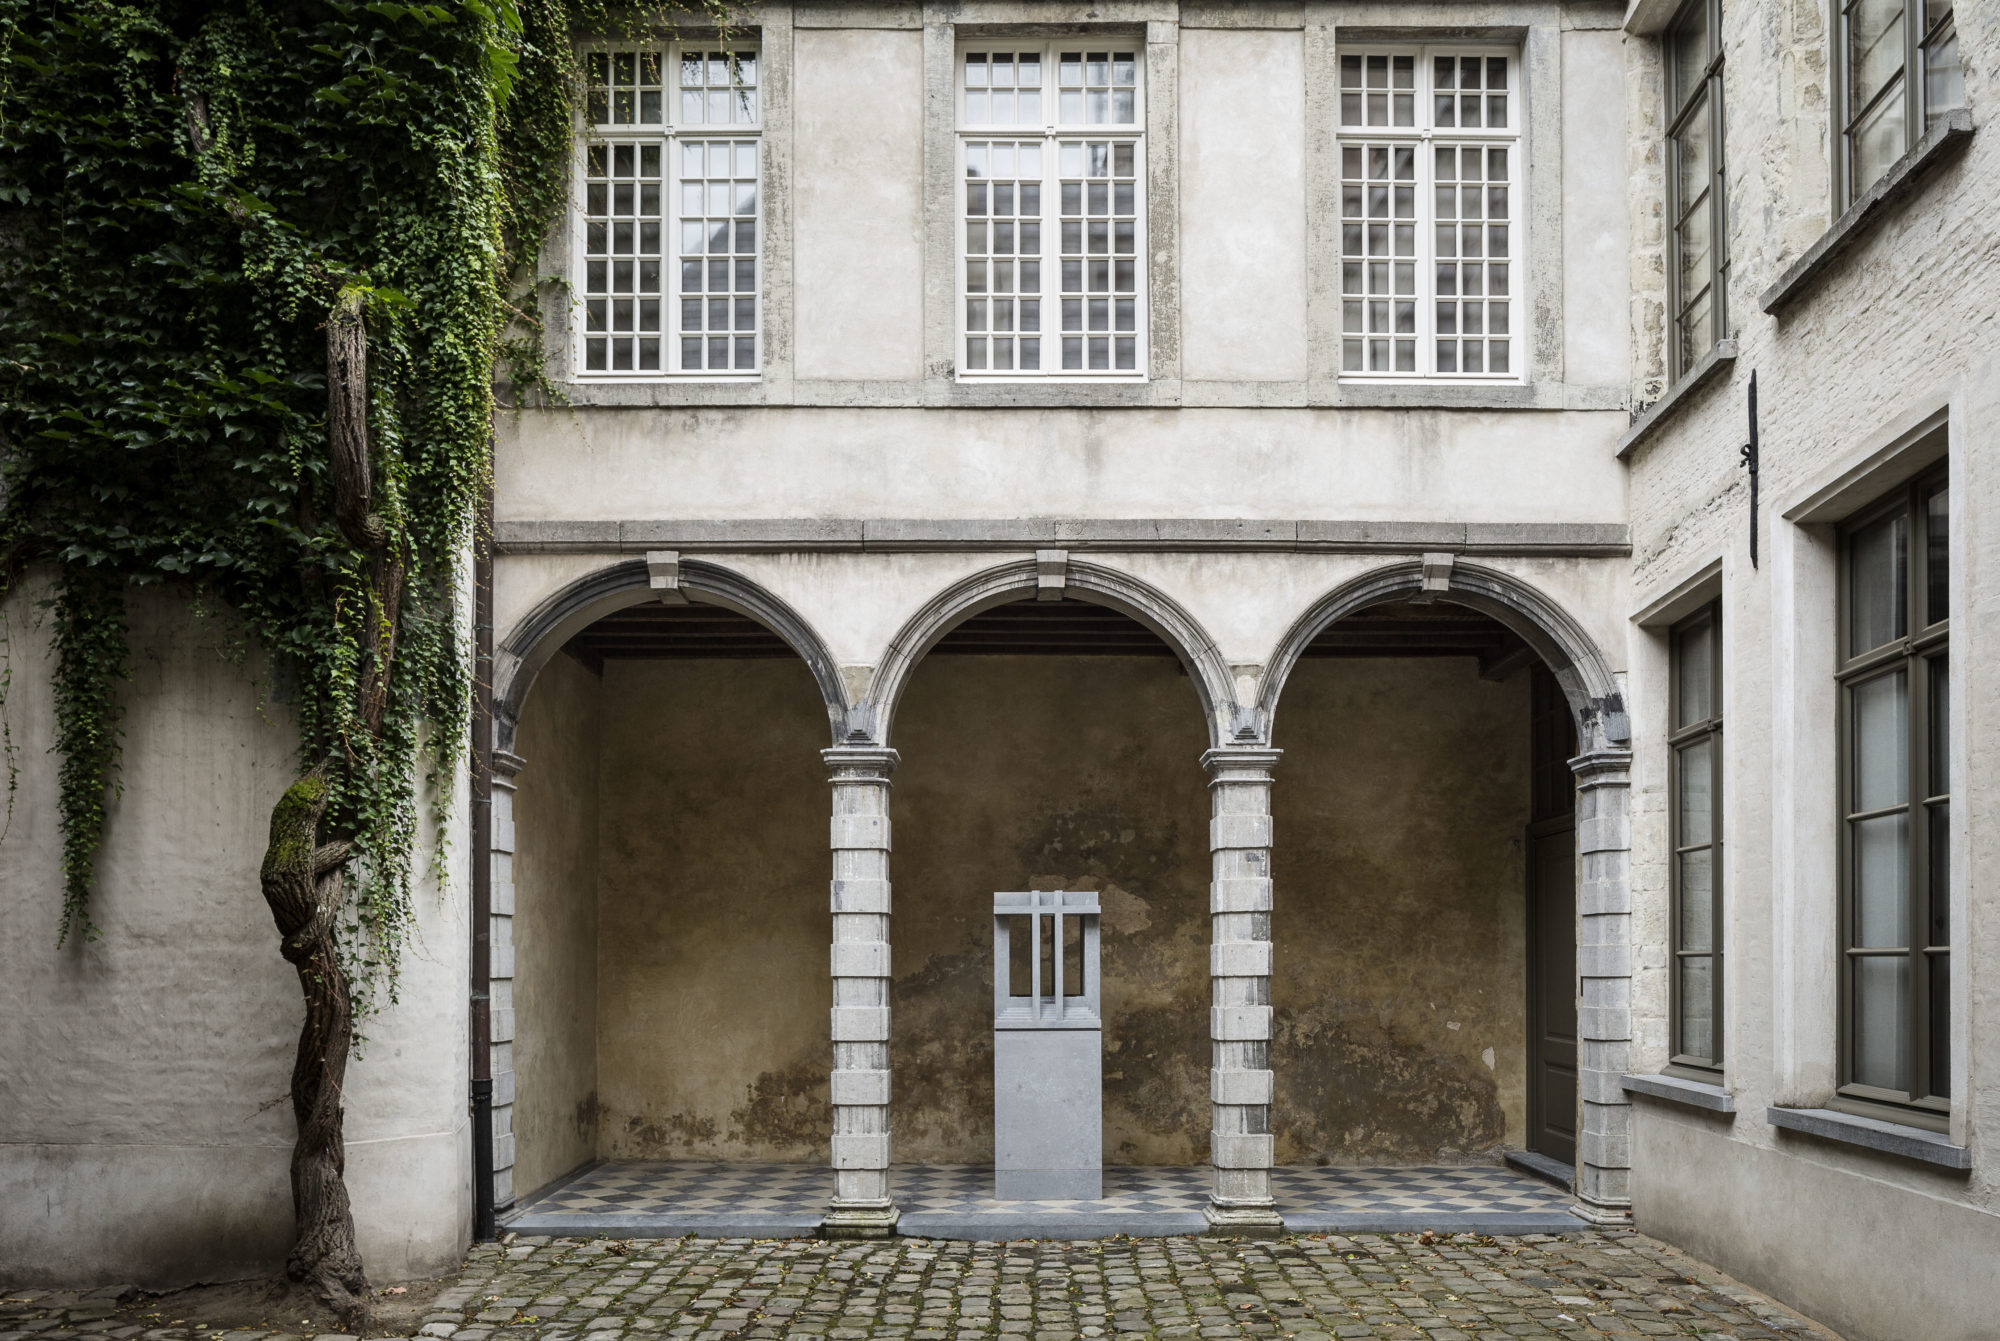 A view of the Vlaeykensgang's central courtyard with historic columns and an artwork by Renato Nicolodi